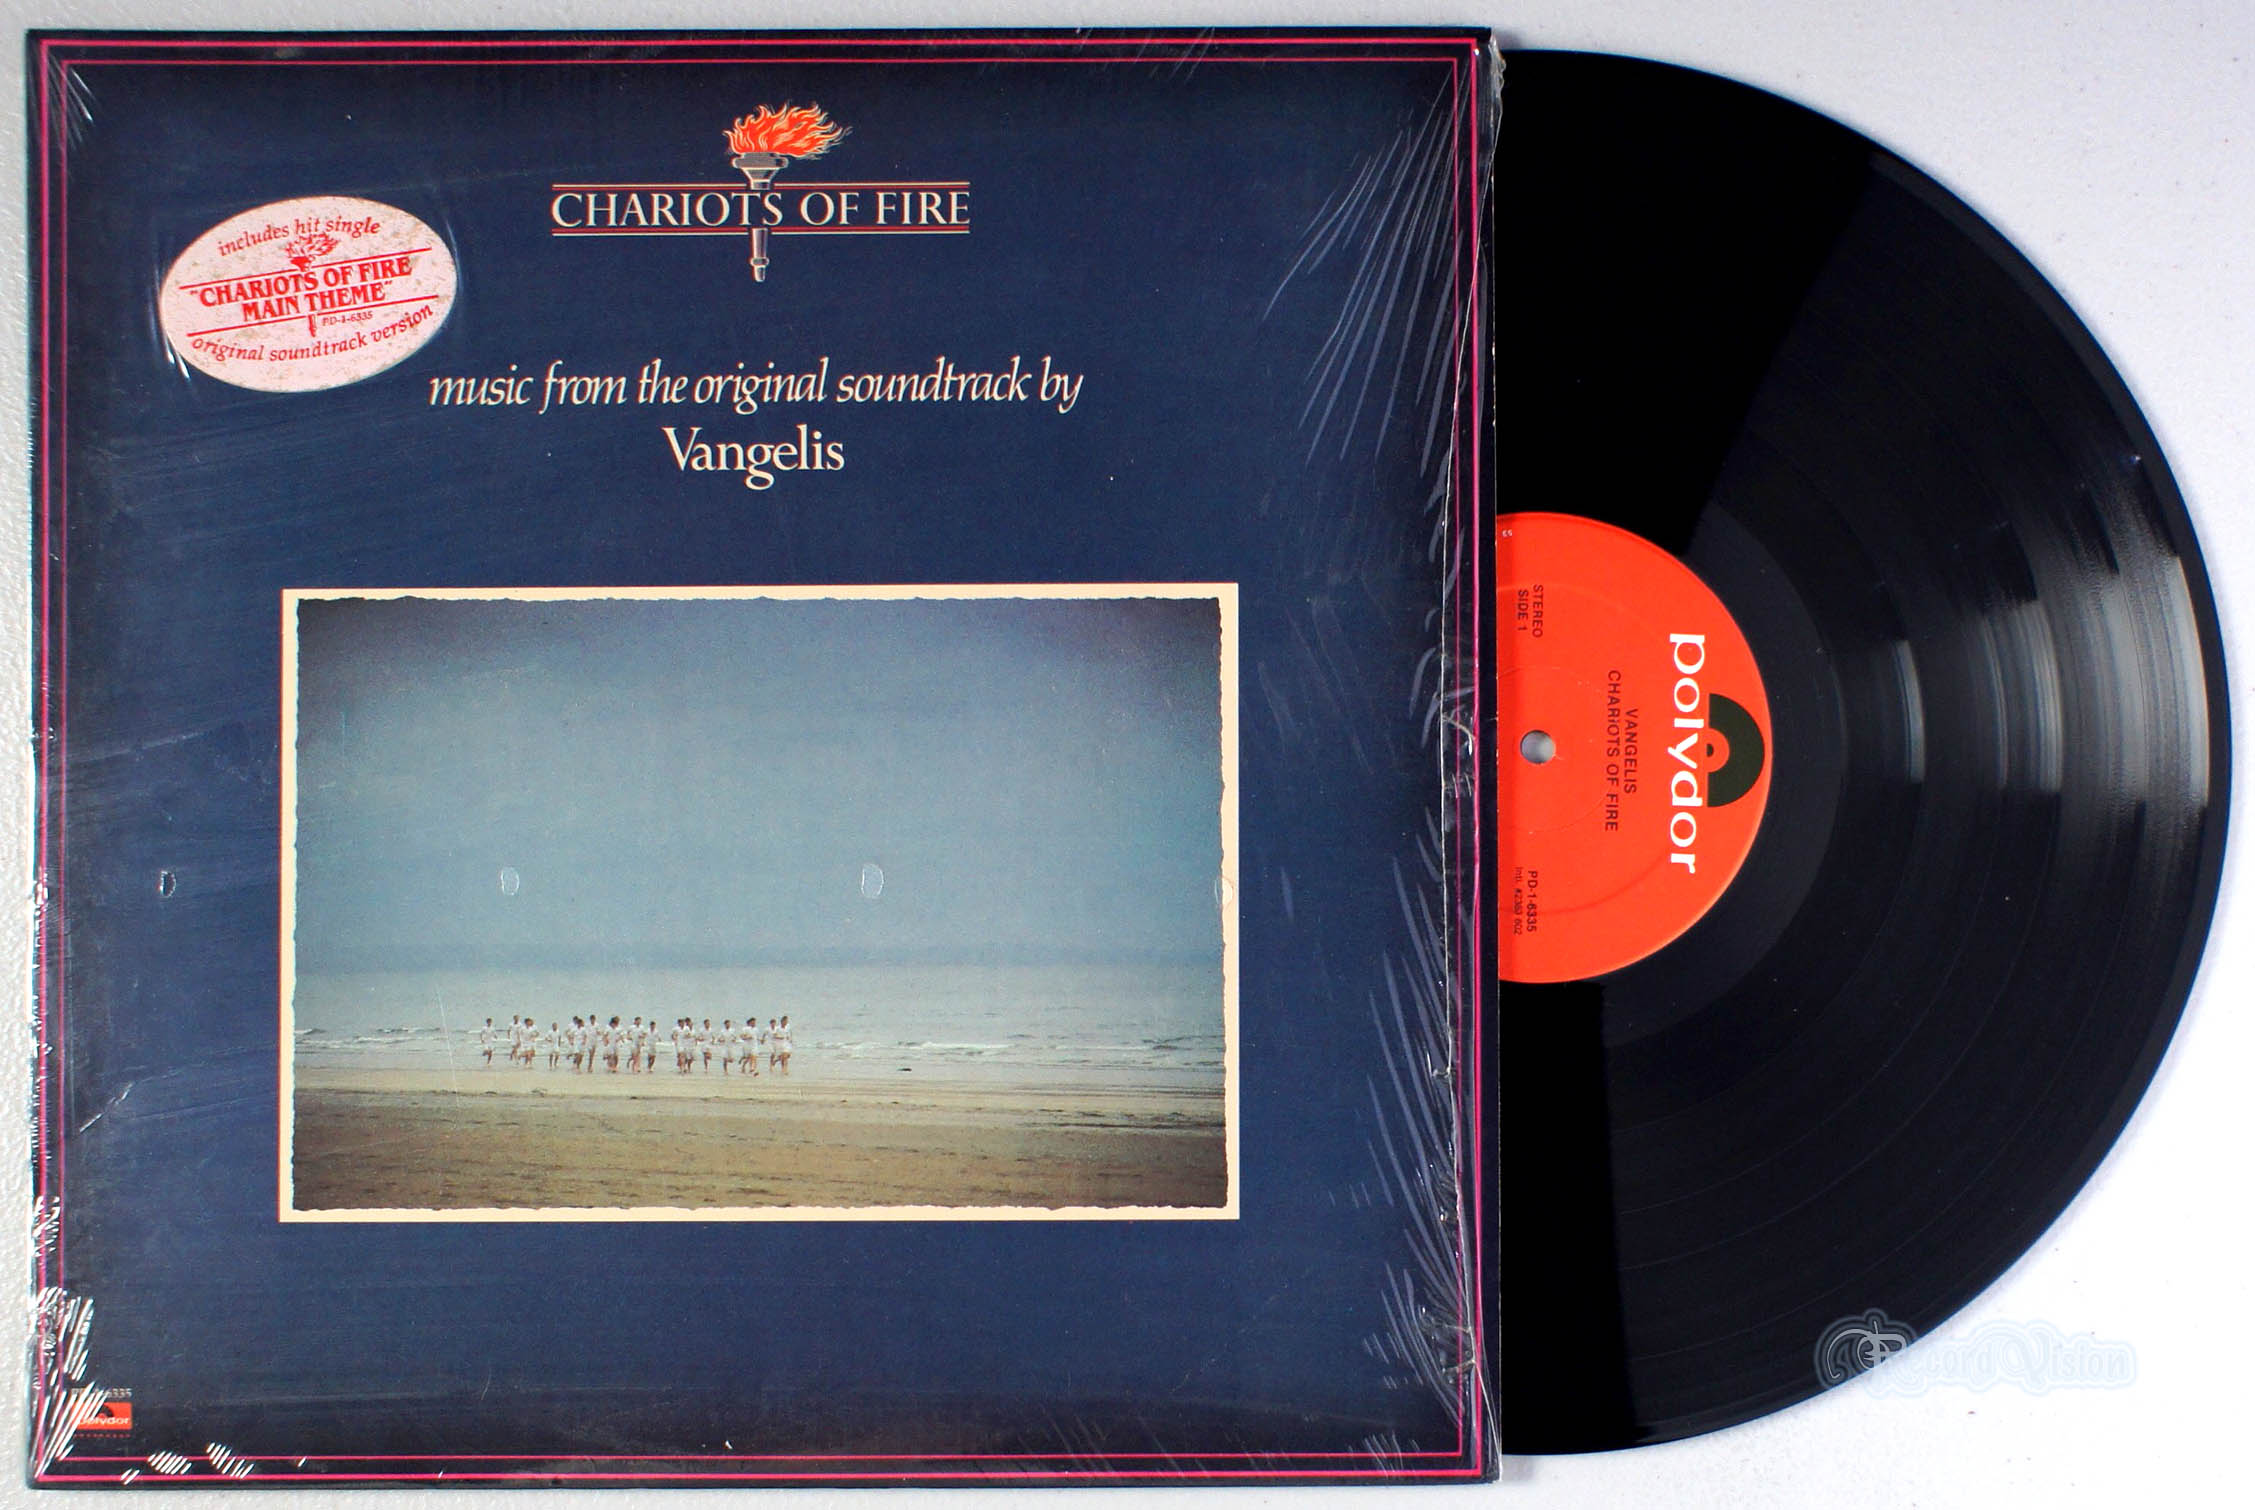 ASSORTED (SOUNDTRACK) - Chariots of Fire - 33T